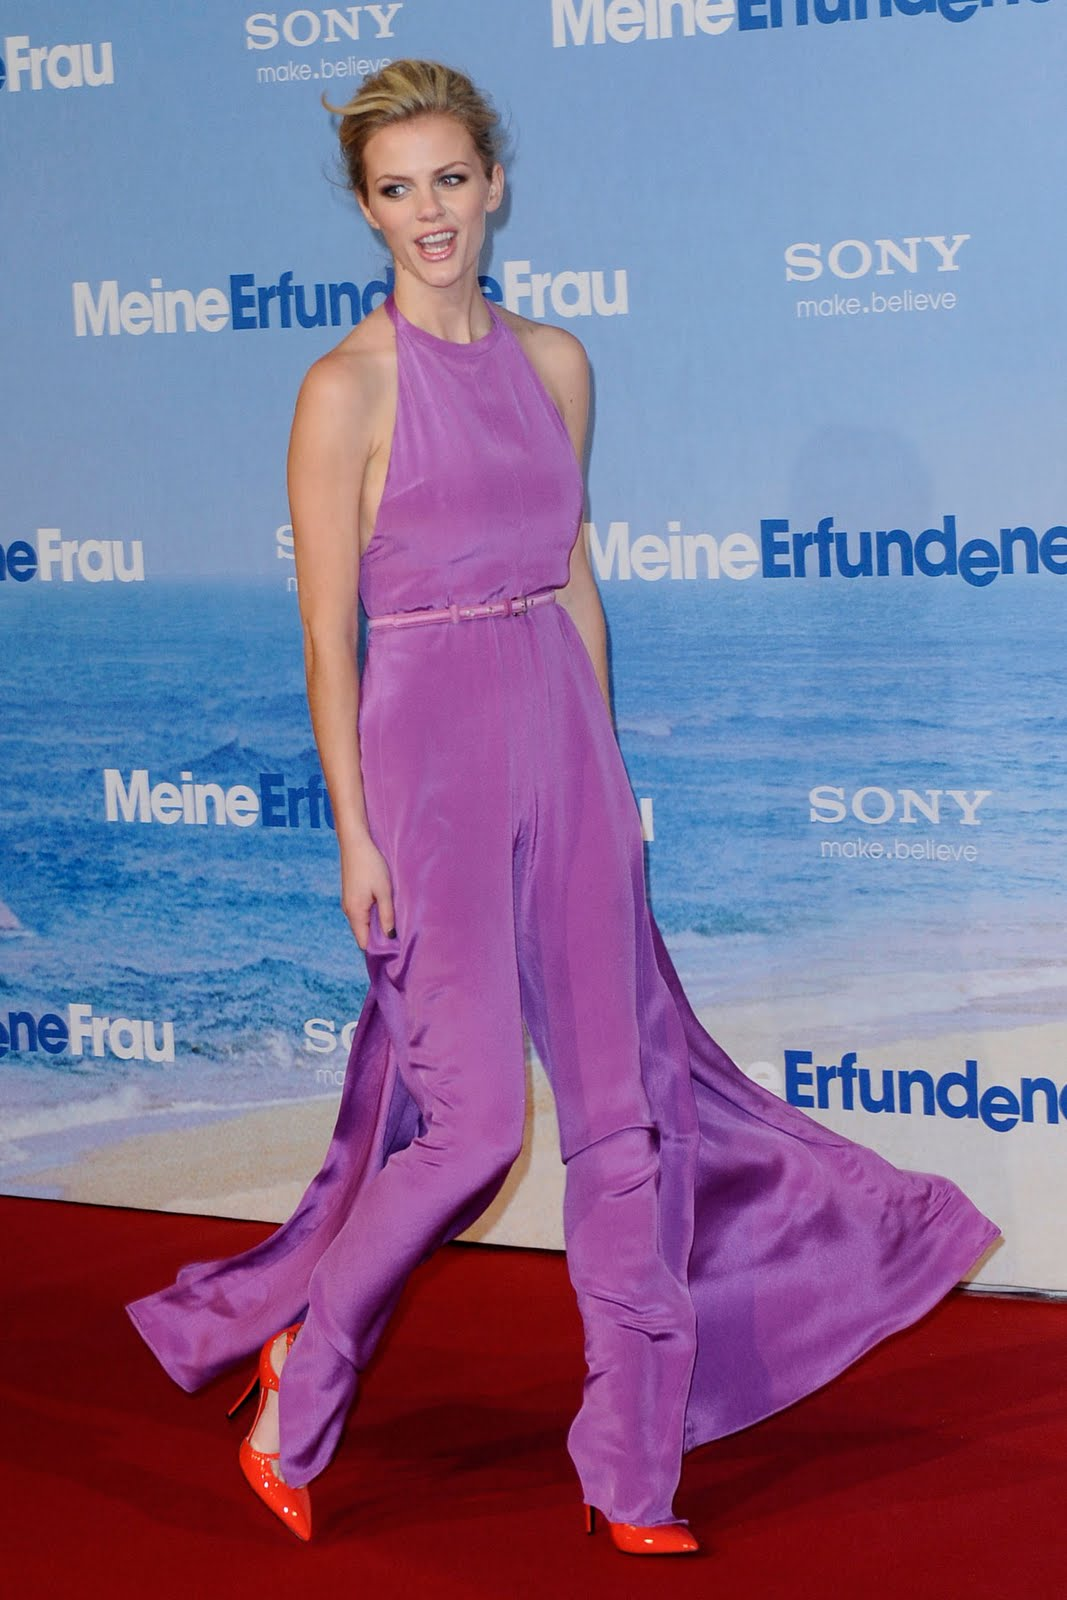 http://1.bp.blogspot.com/-vF3jcmf7G8I/TW60ns_GduI/AAAAAAAADiE/qoNoeWyHDJo/s1600/brooklyn-decker-just-go-with-it-berlin-premiere-01.jpg